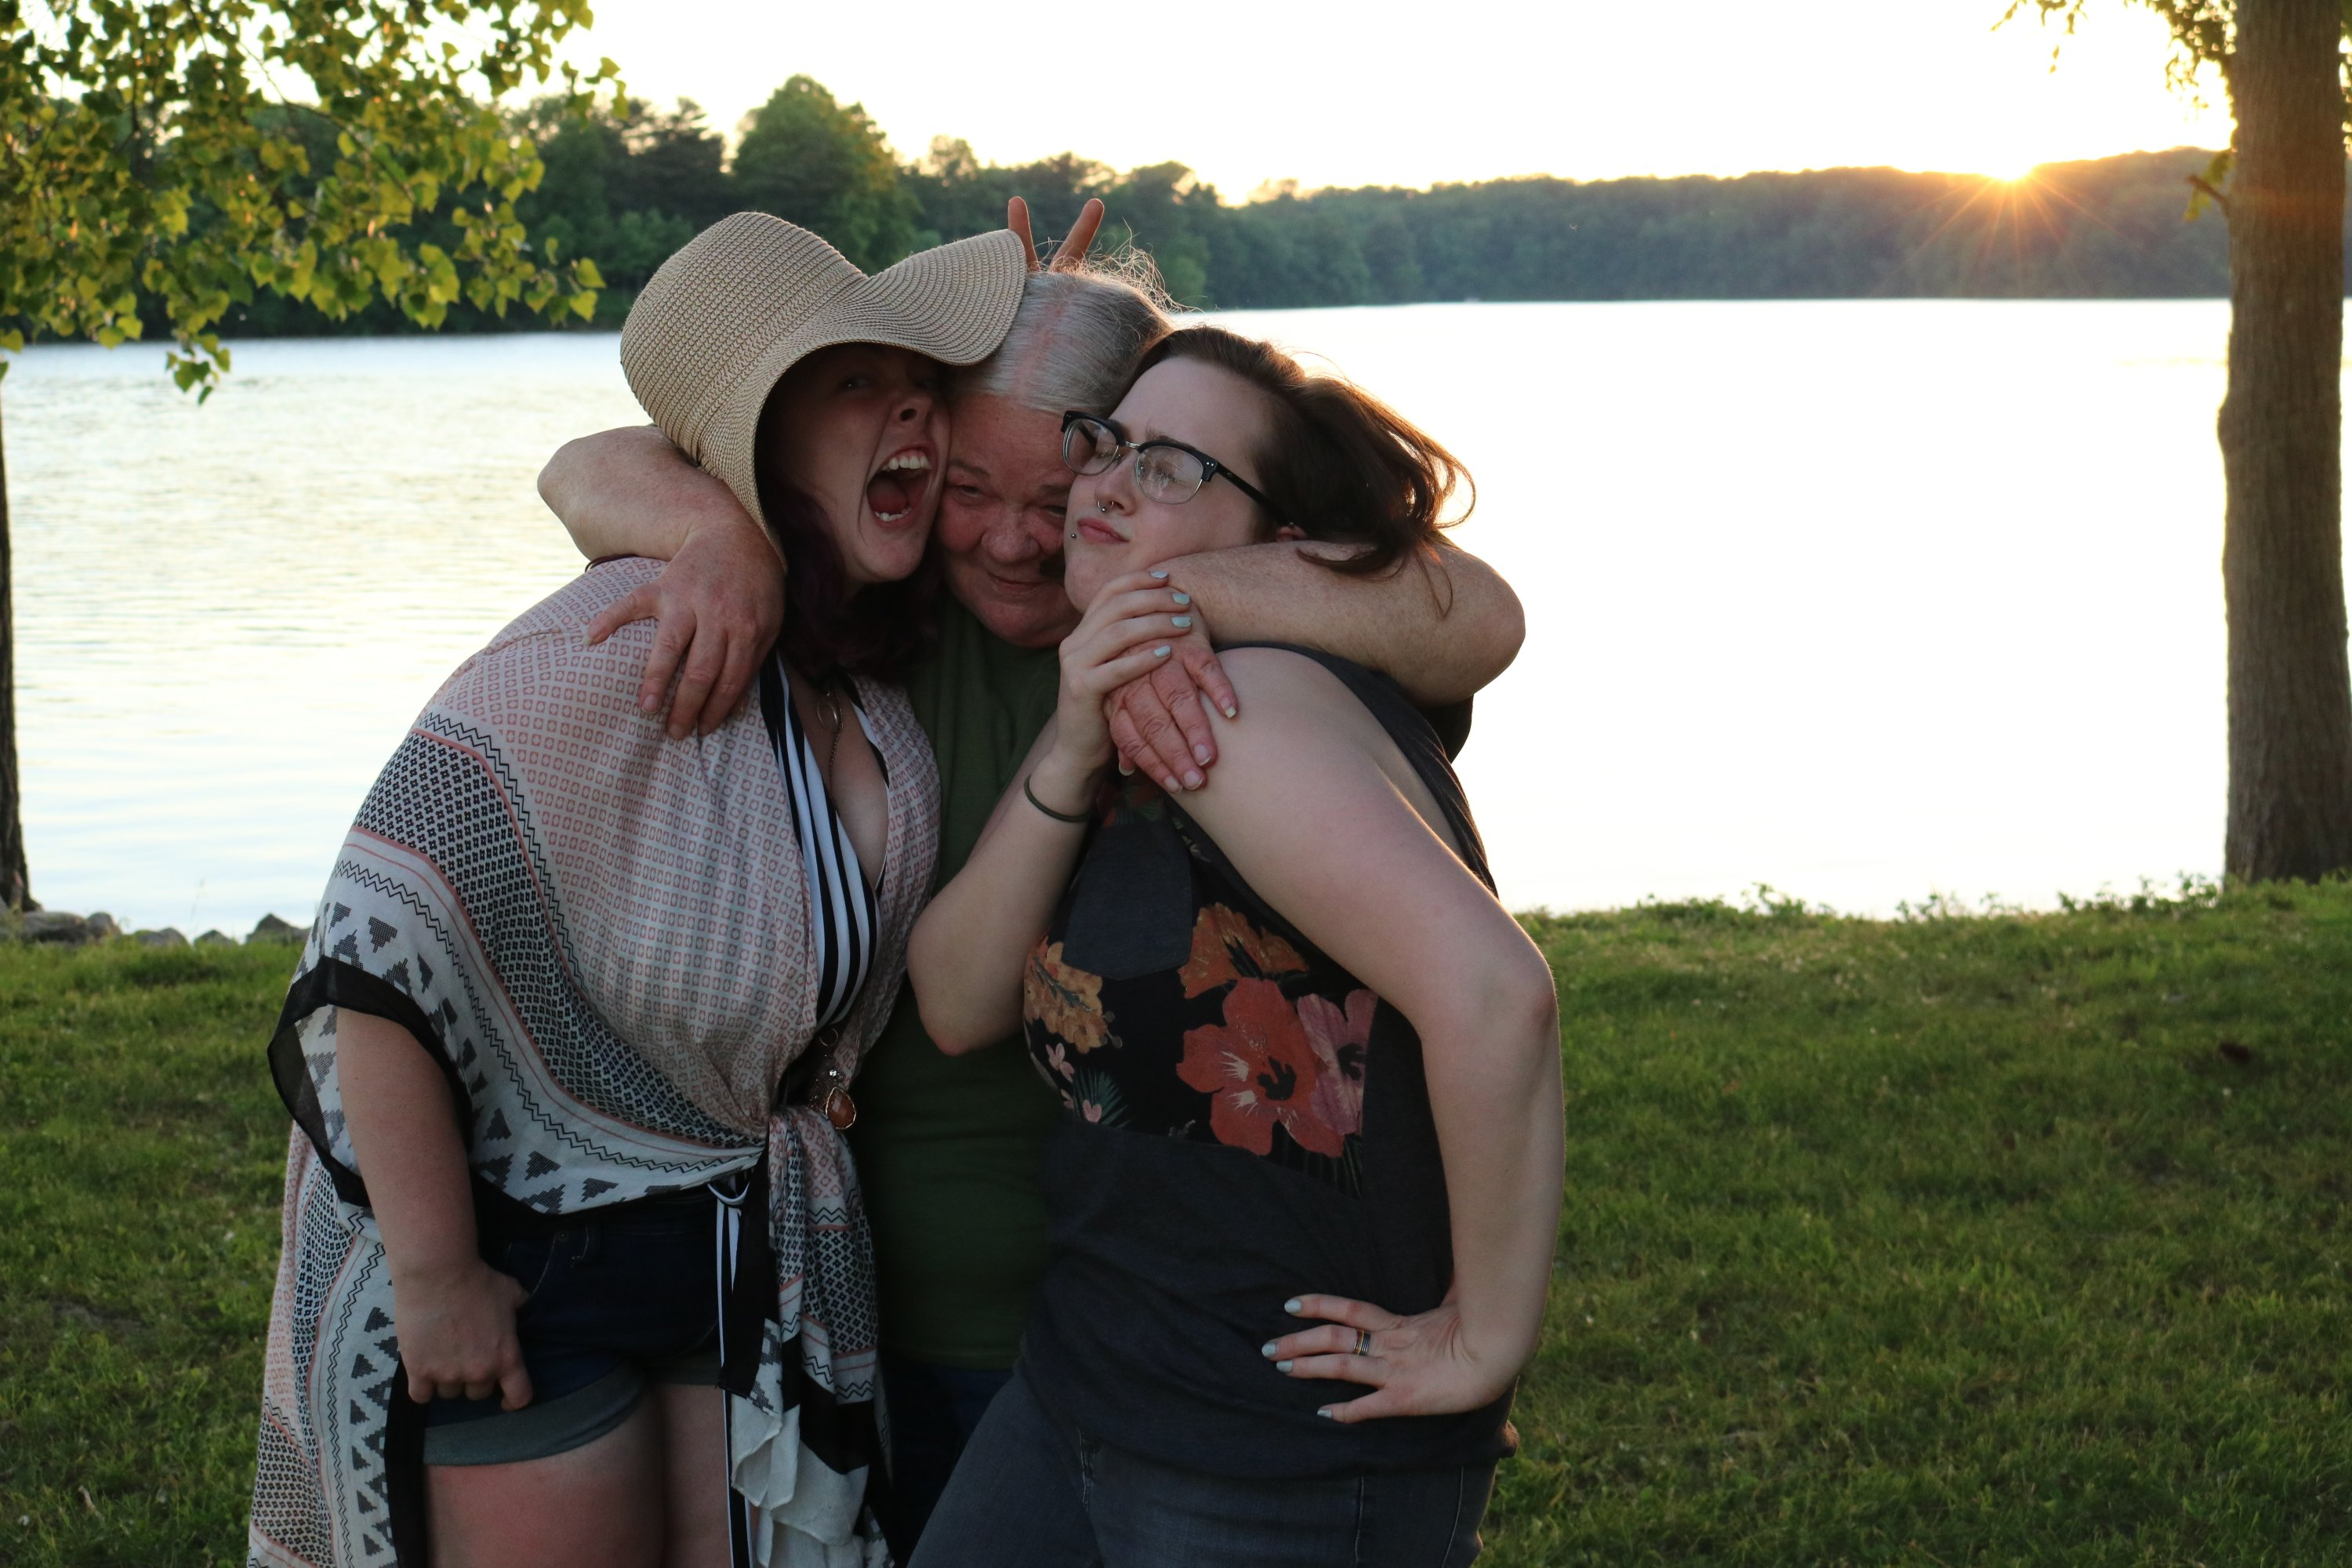 harrison-lake-state-park-family-picture-june-2019